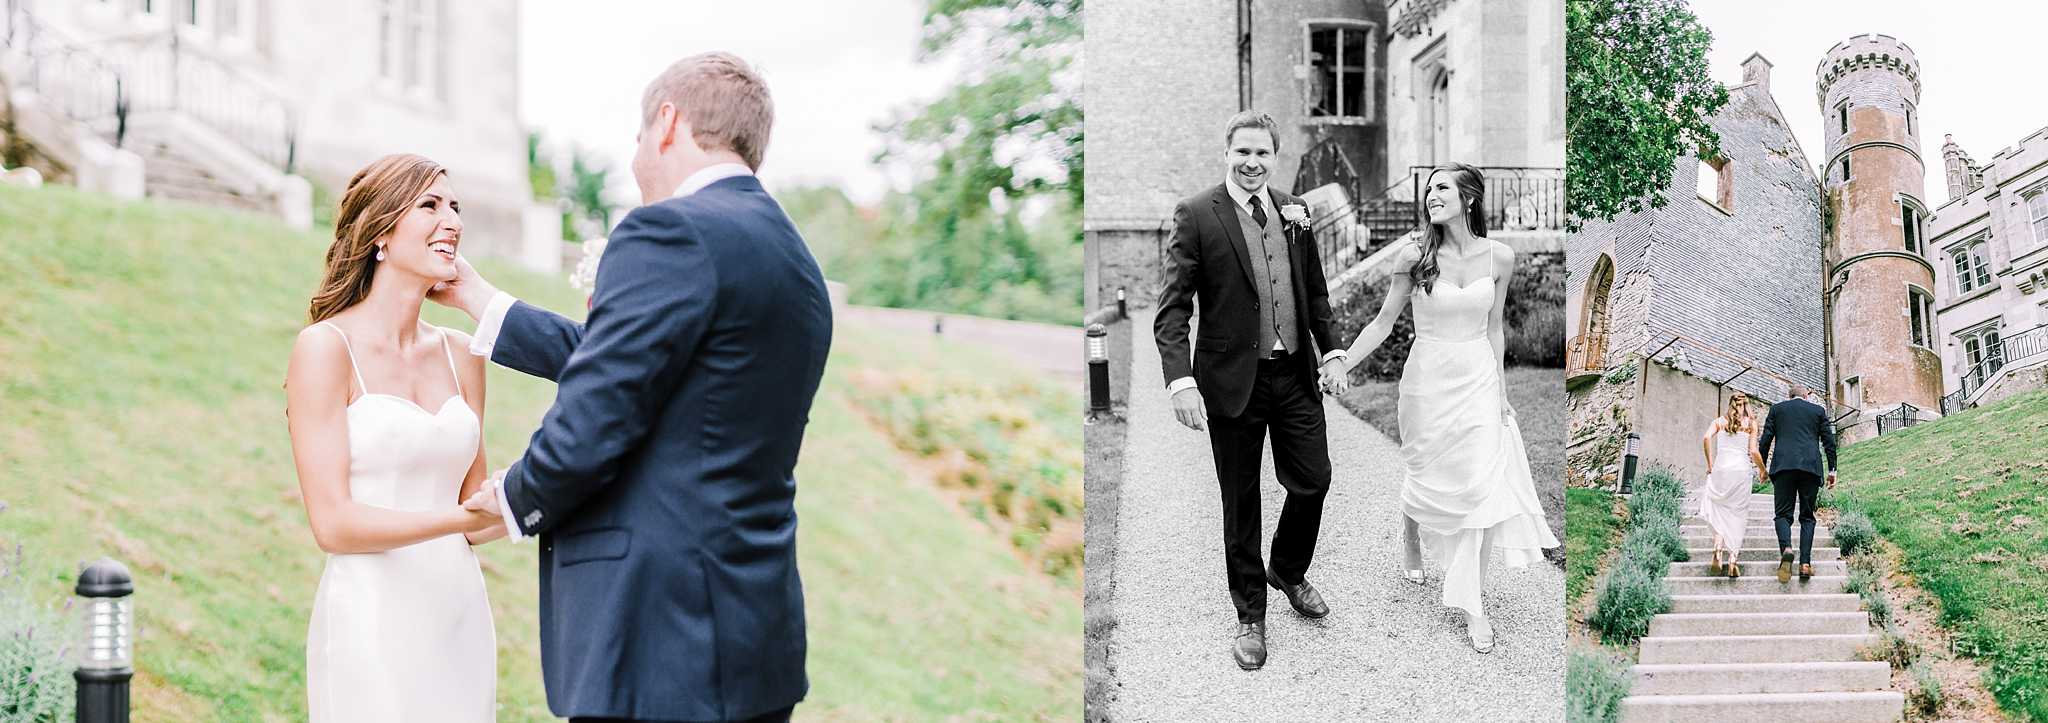 Destination Wedding Photographer UK